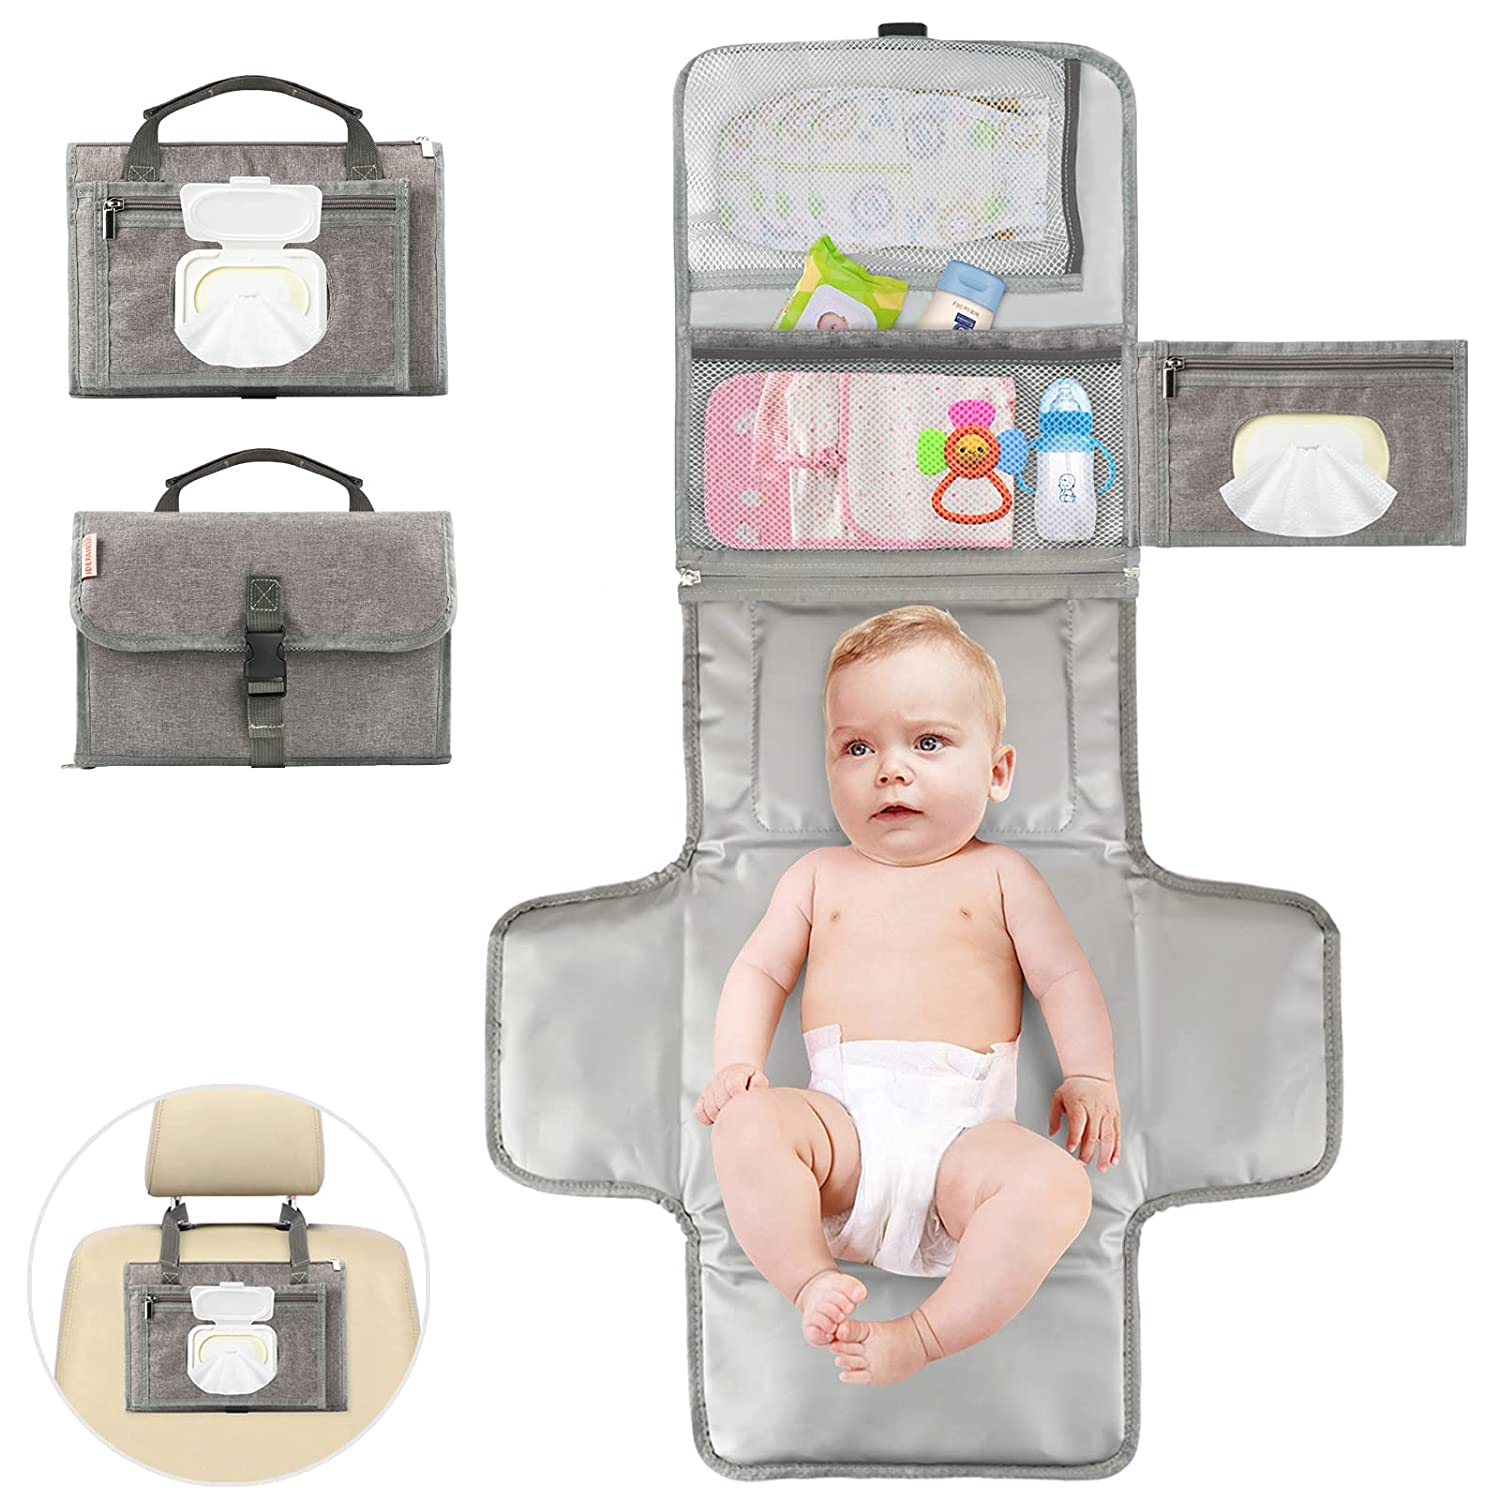 Portable Diaper Changing Pad,Detachable Baby Change Mat with Head Cushion,Waterproof Diaper Travel Changing Station Kit Baby Gift by Idefair